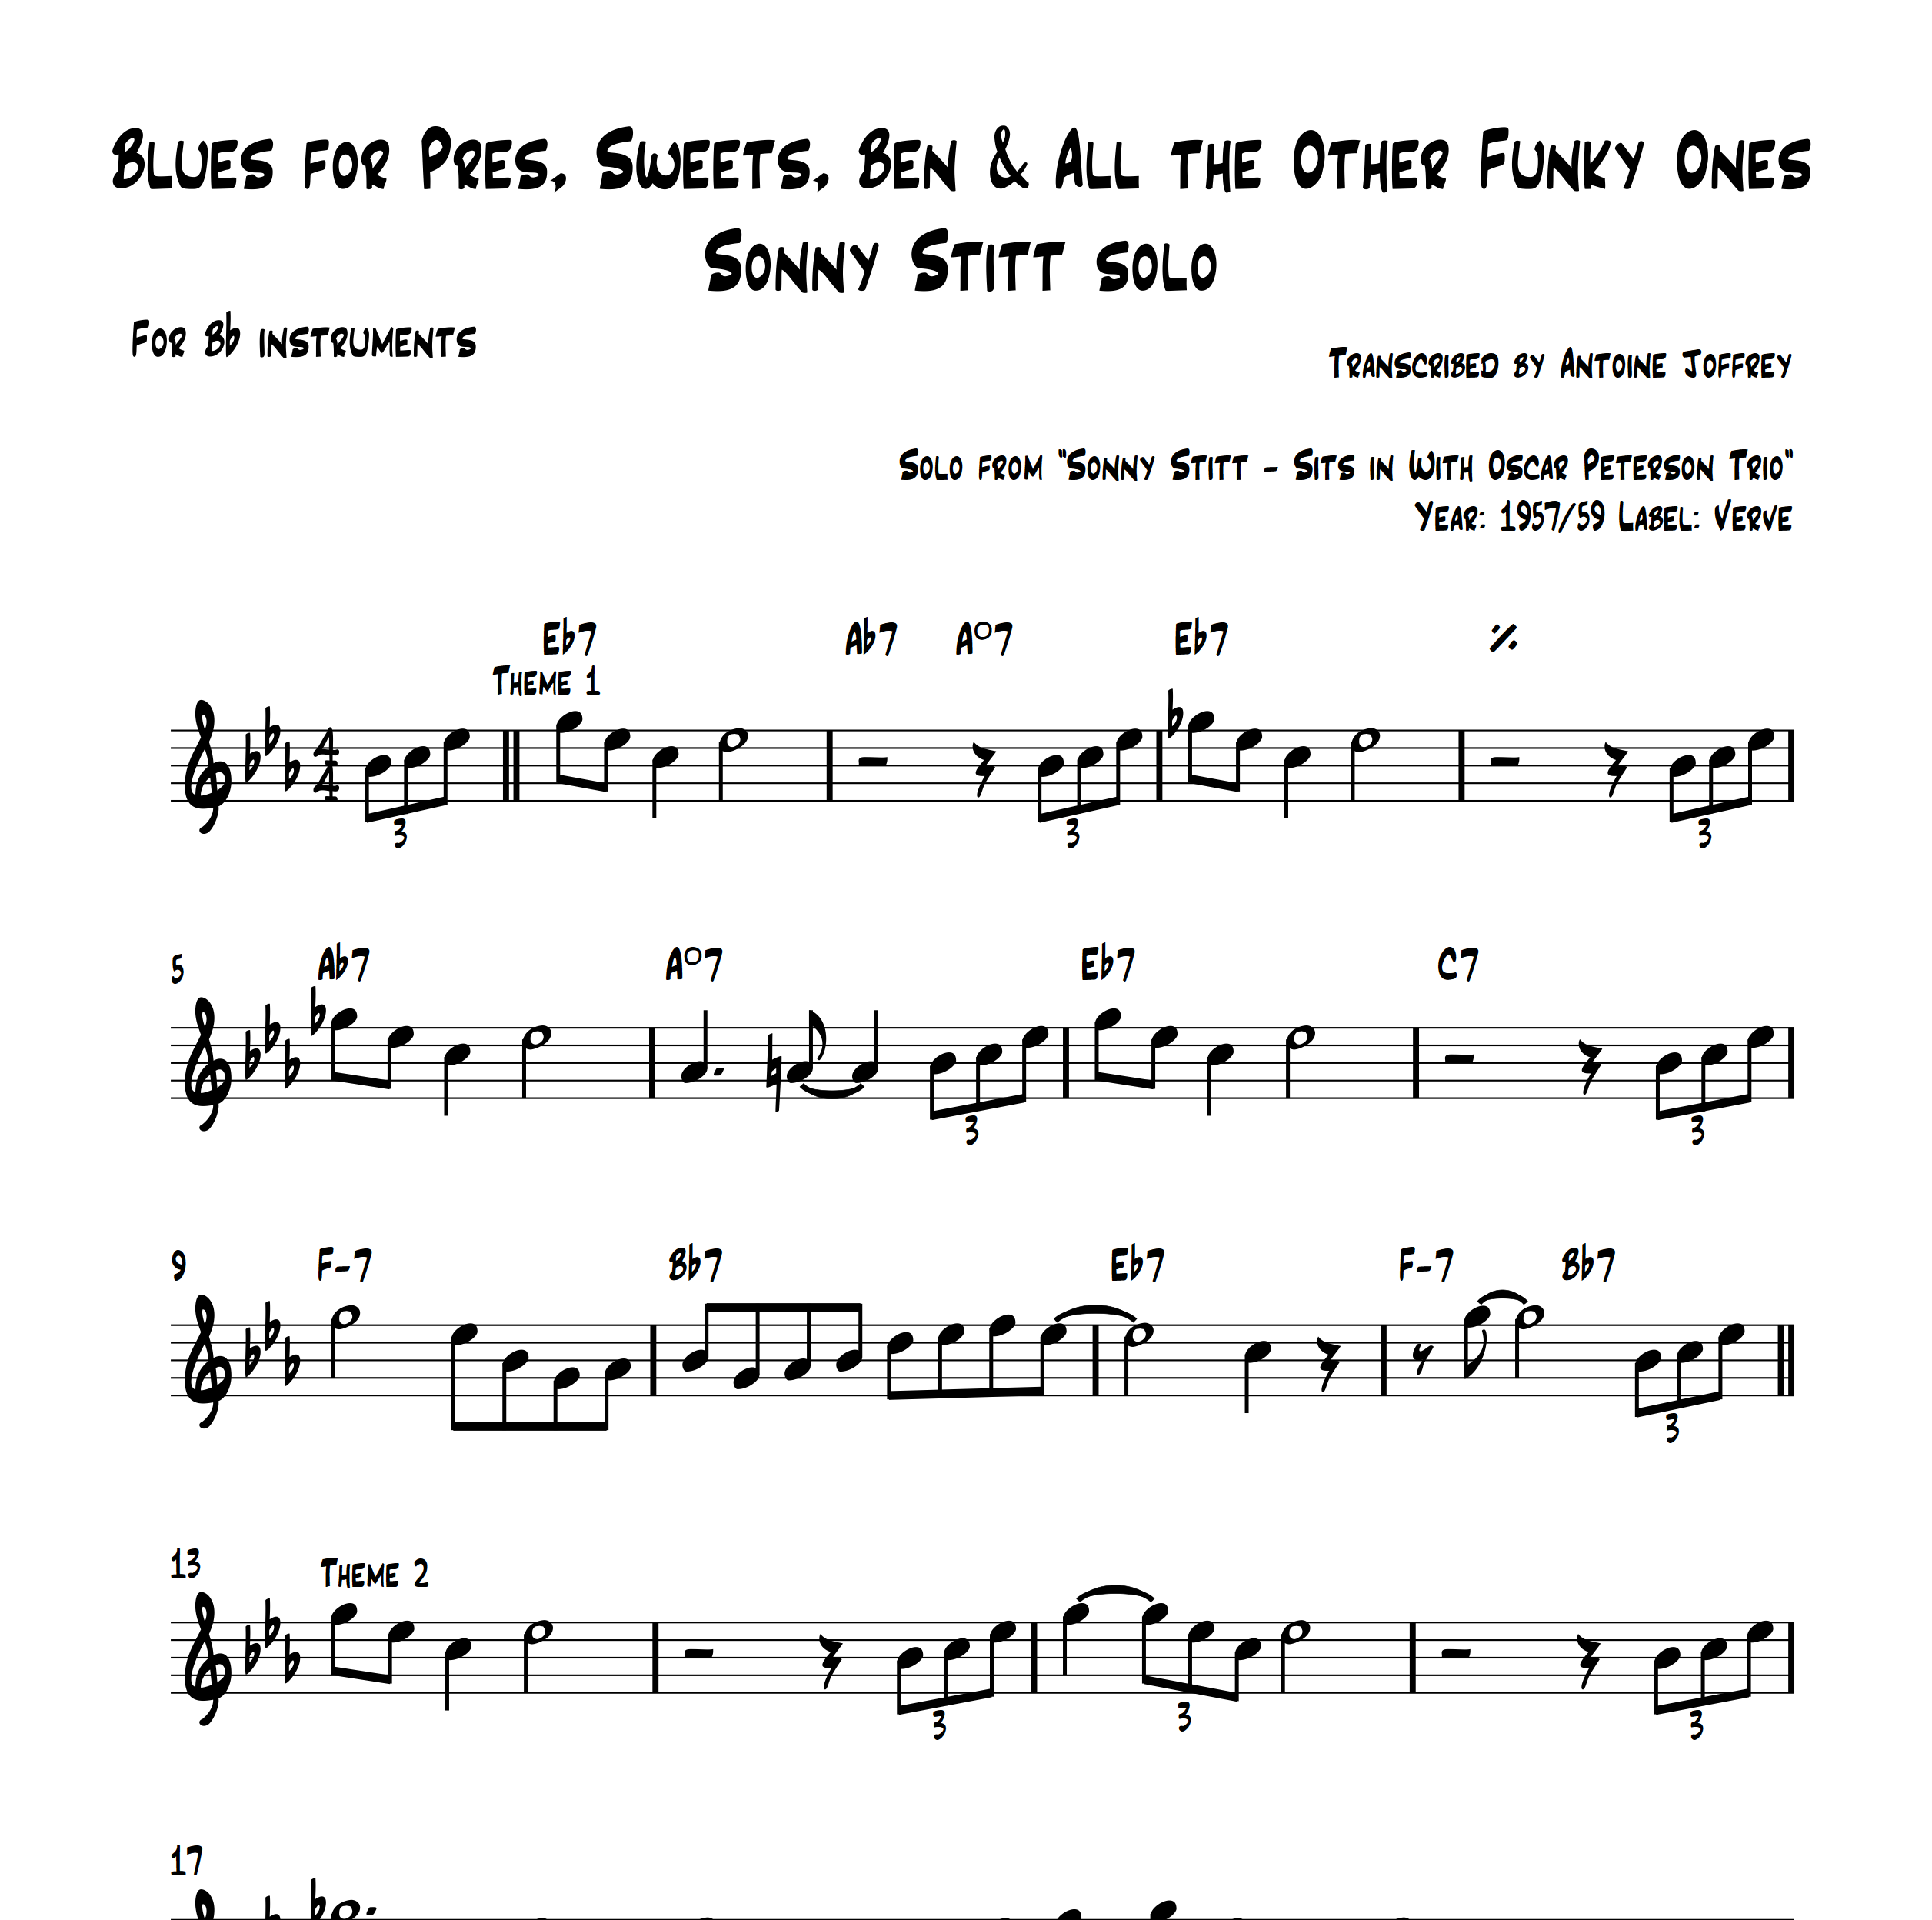 Blues for Pres, Sweets, Ben & All the Other Funky Ones - Sonny Stitt solo